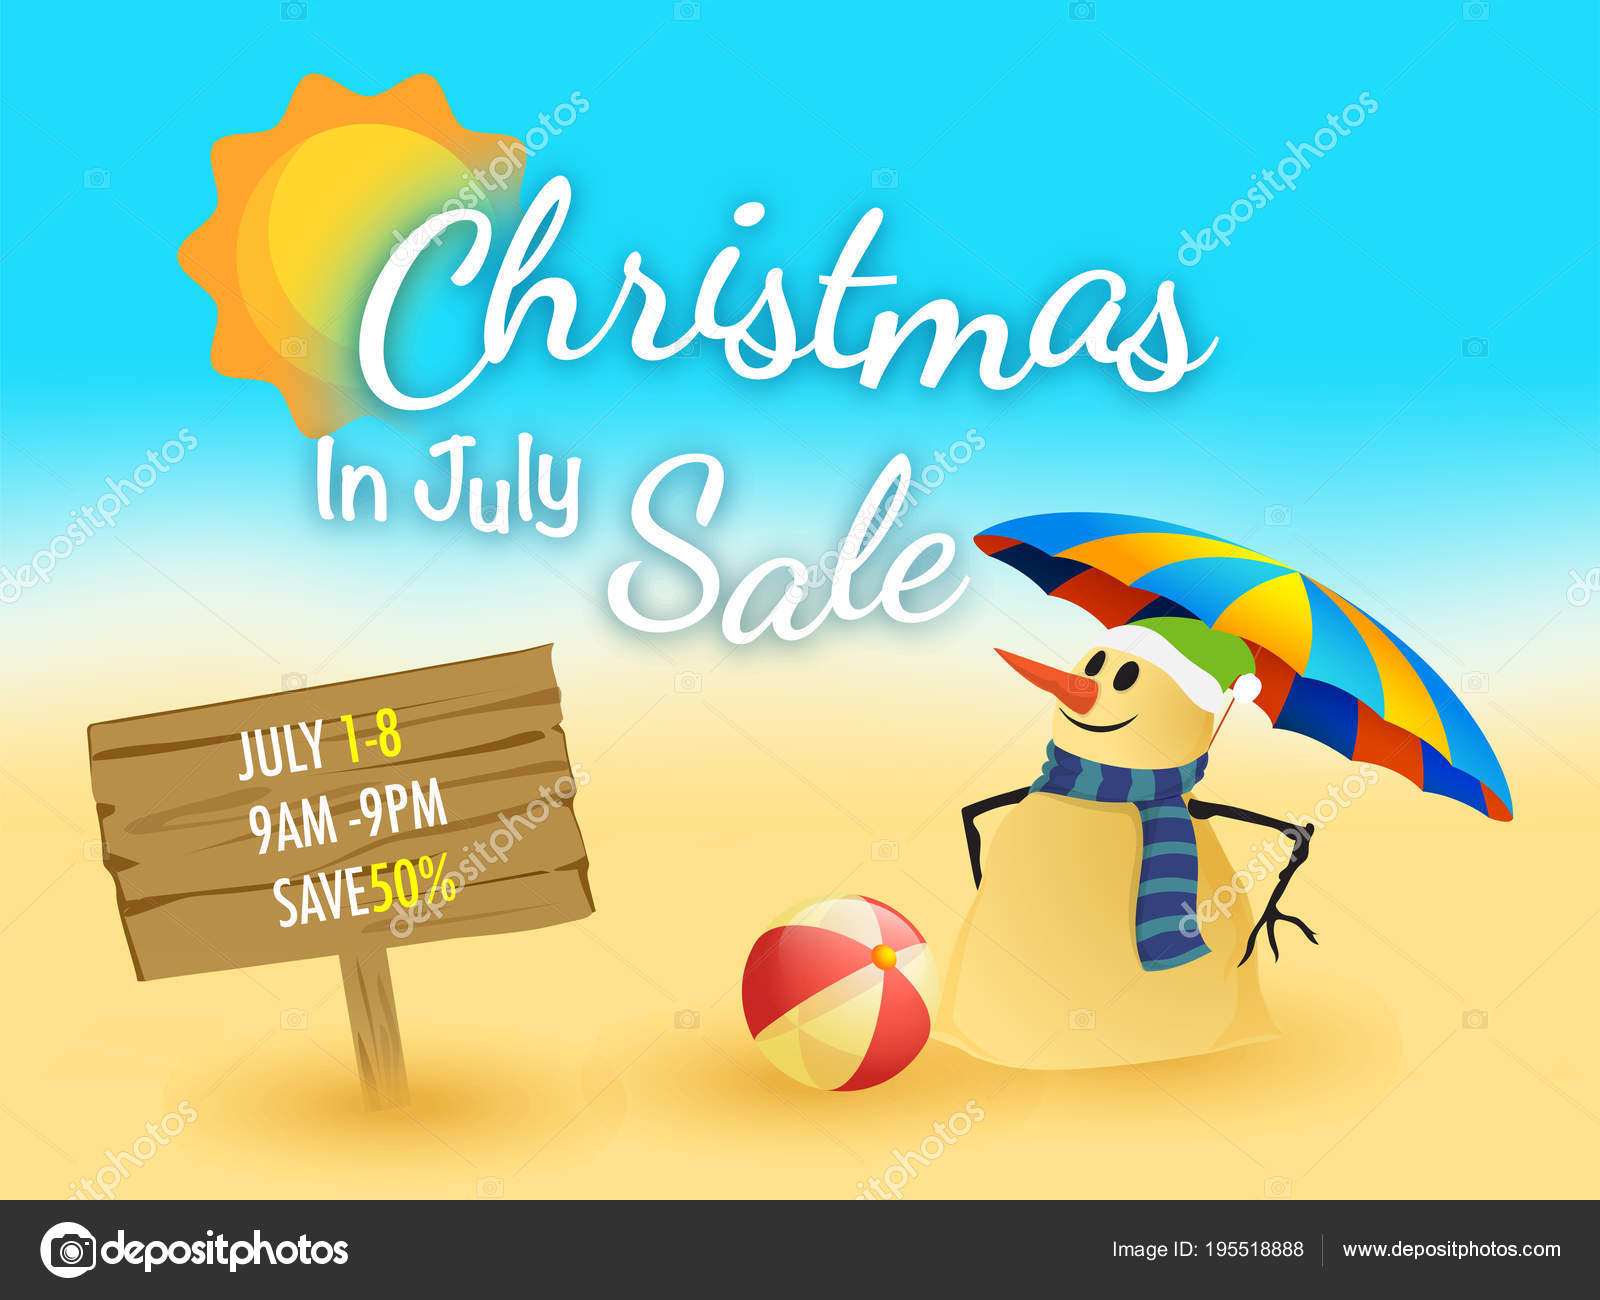 Christmas In July Sale Images.Christmas In July Fest Sale Banner Poster Or Flyer Design